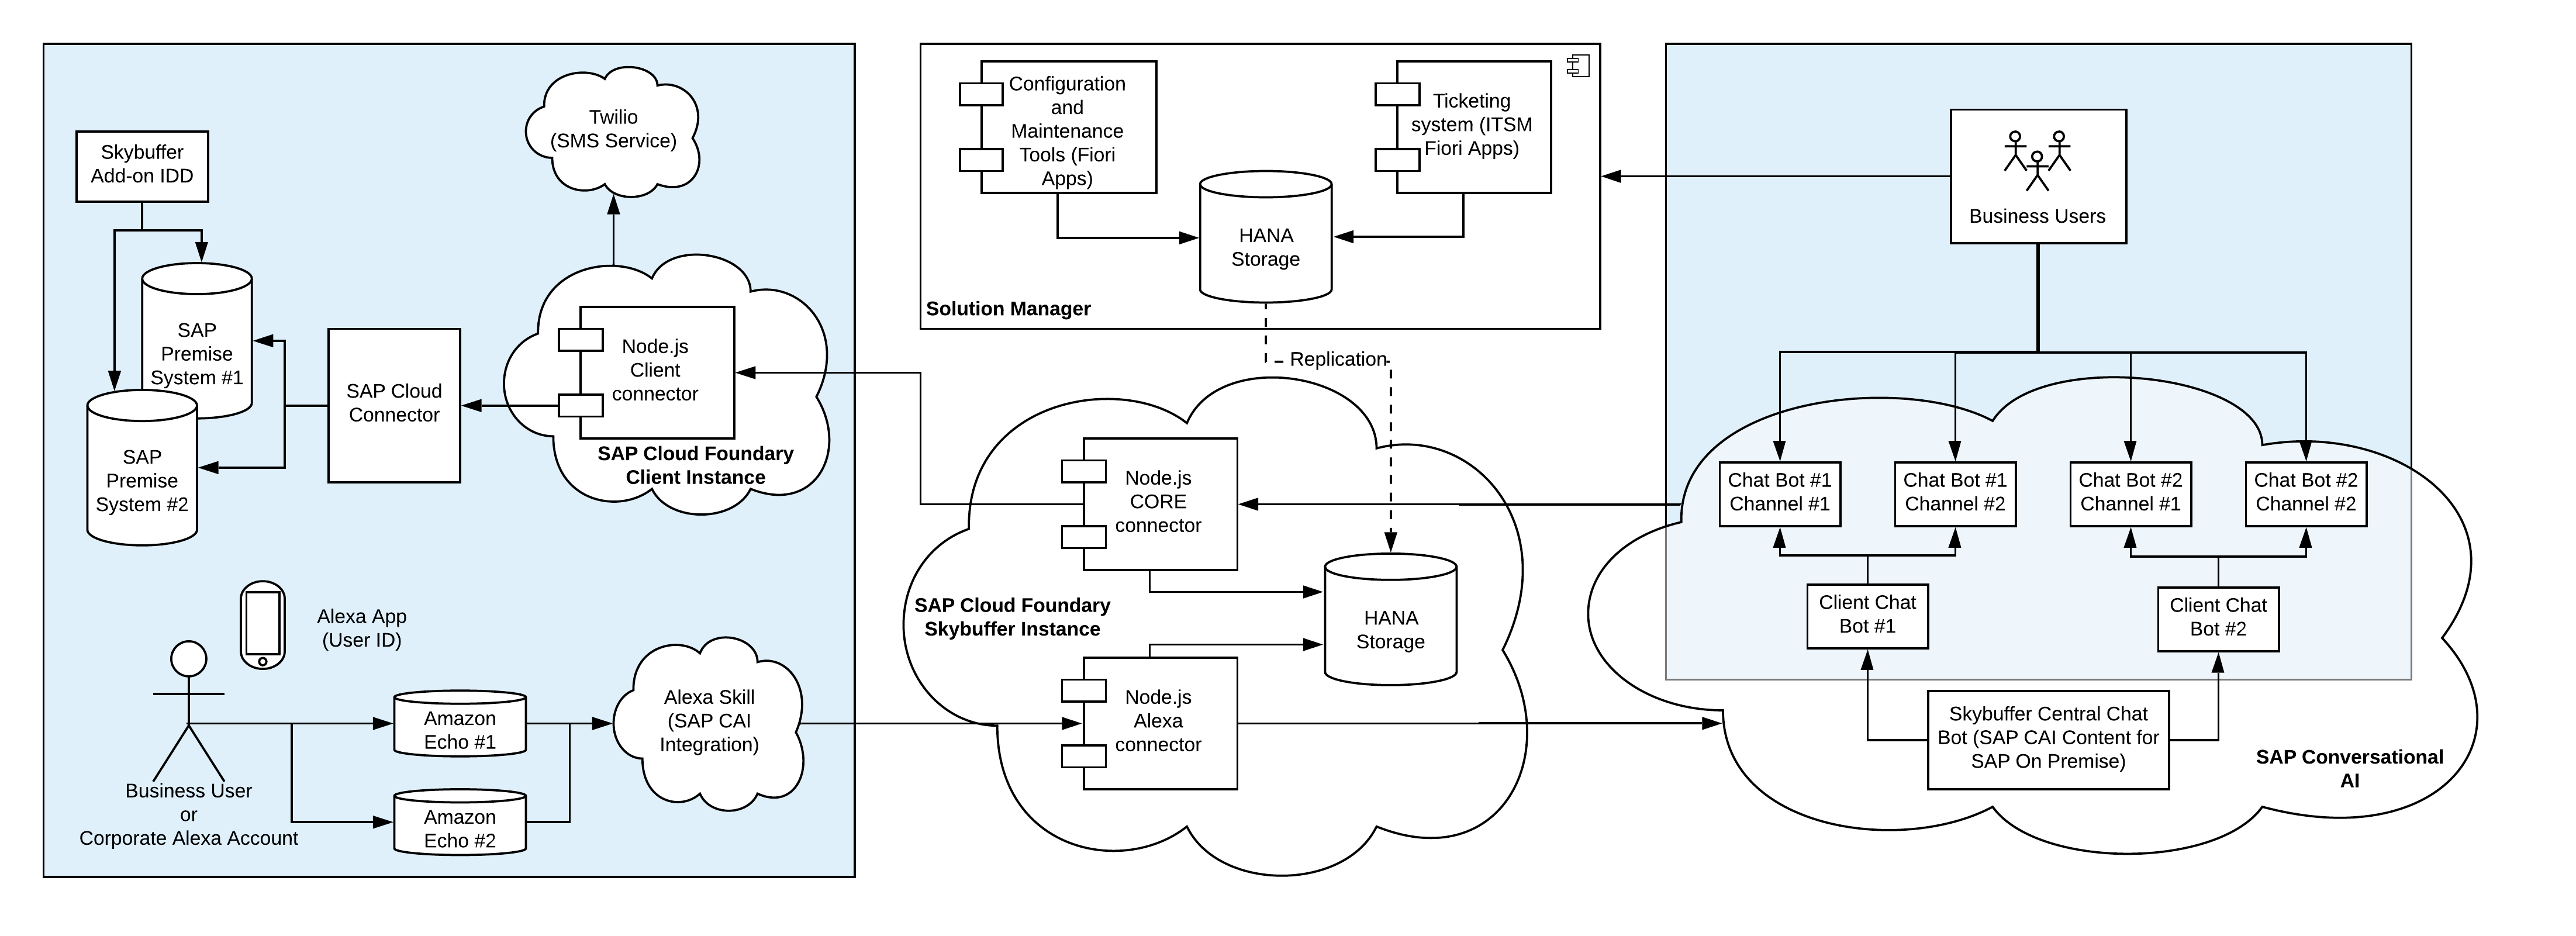 skybuffer-yai-integrated-concept-and-fiori-apps-technical-data-flow